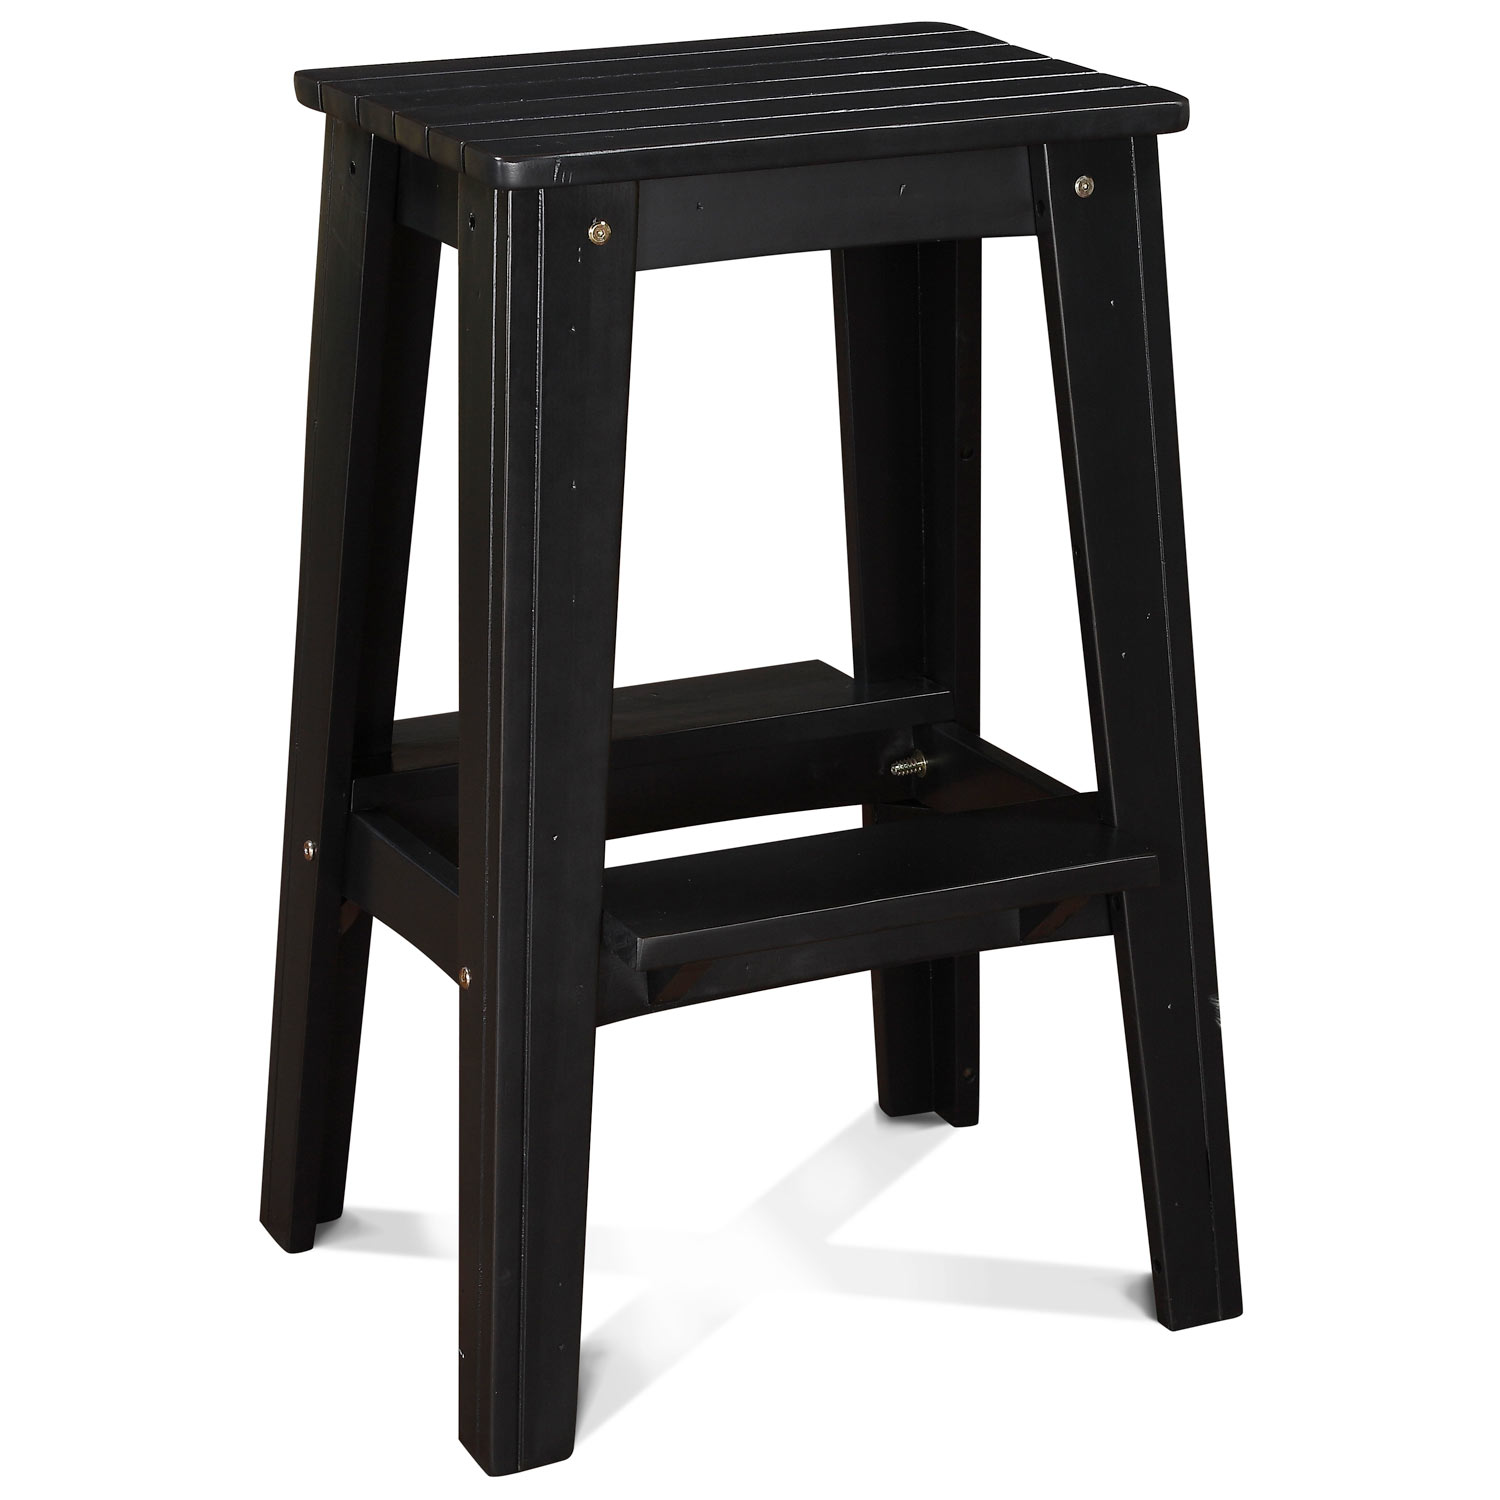 "30"" Backless Outdoor Patio Bar Stool - Rustic, Black Pearl - CHIC-CRF-1BS30-BP"